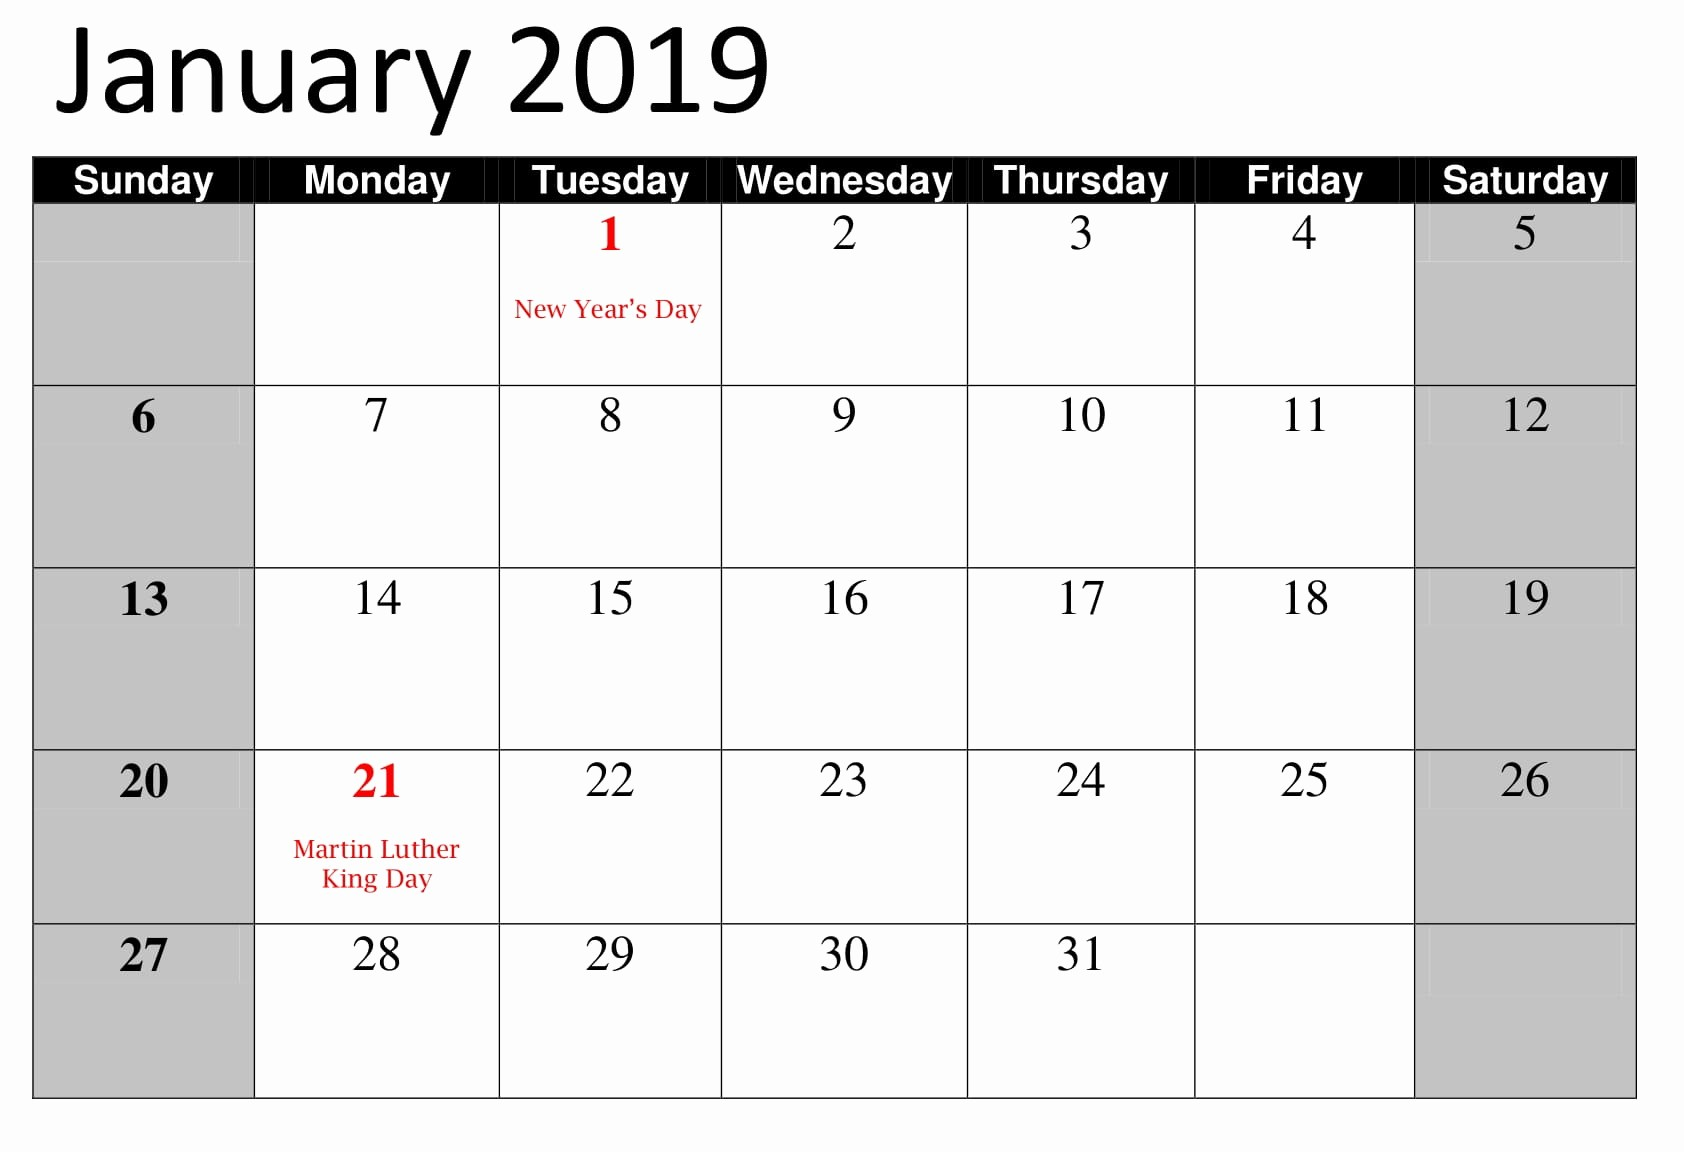 2019 Word Calendar with Holidays Best Of January 2019 Calendar with Public Holidays and Festival